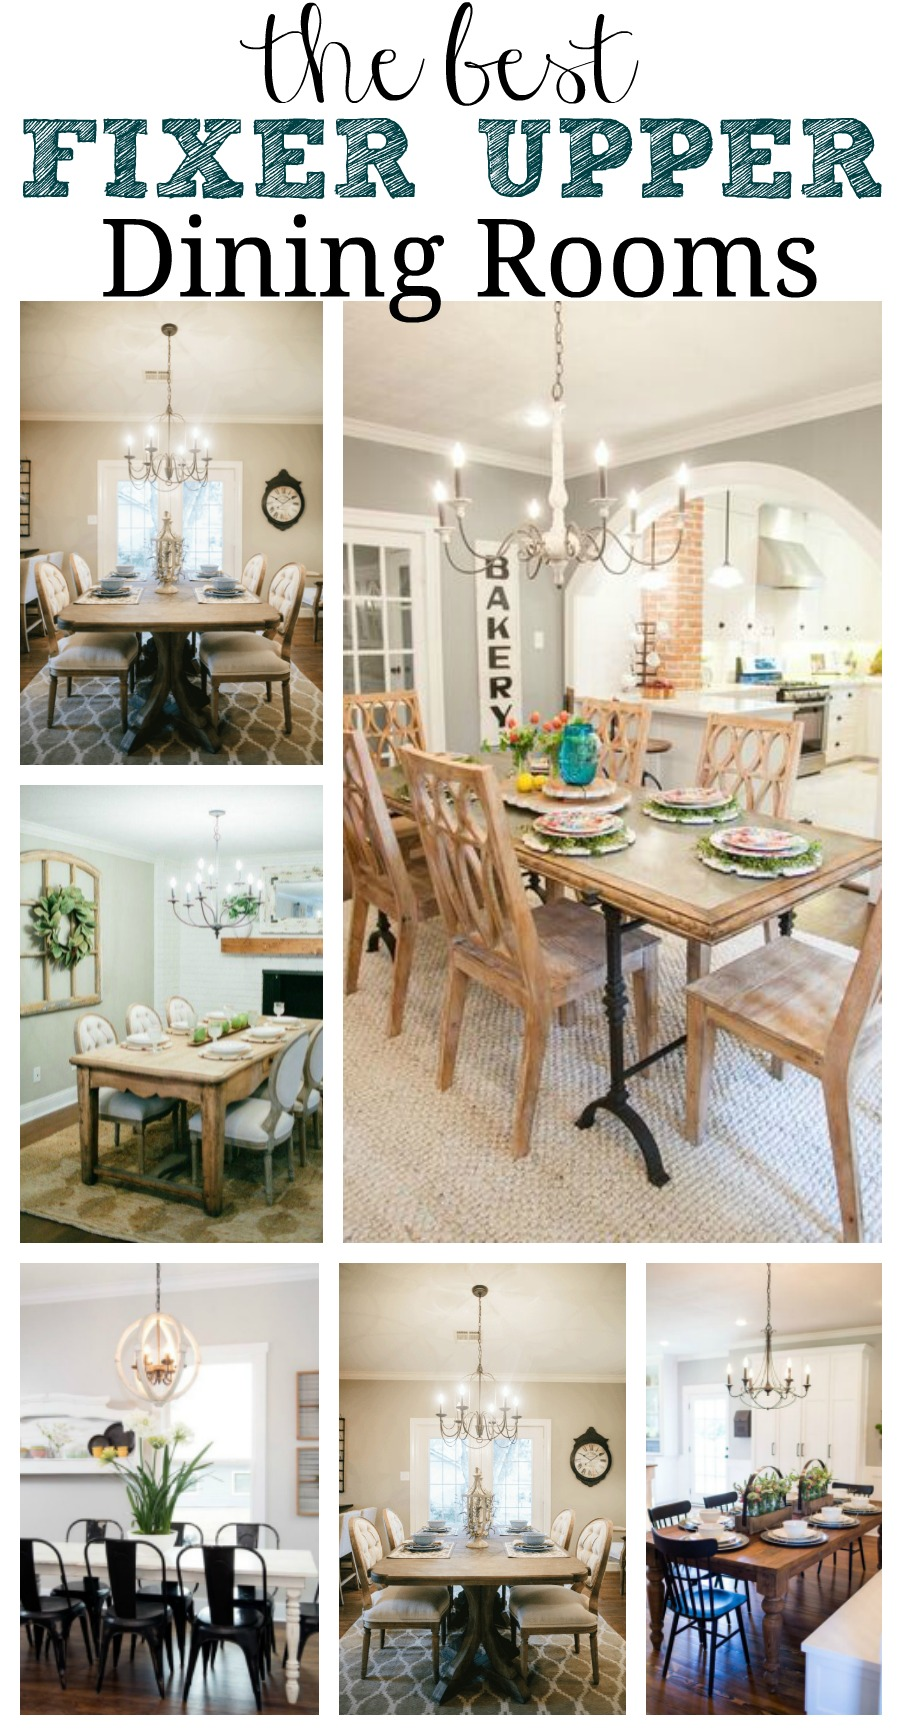 Need Dining Room Inspiration Check Out Joanna Gaines Best Rooms From Fixer Upper